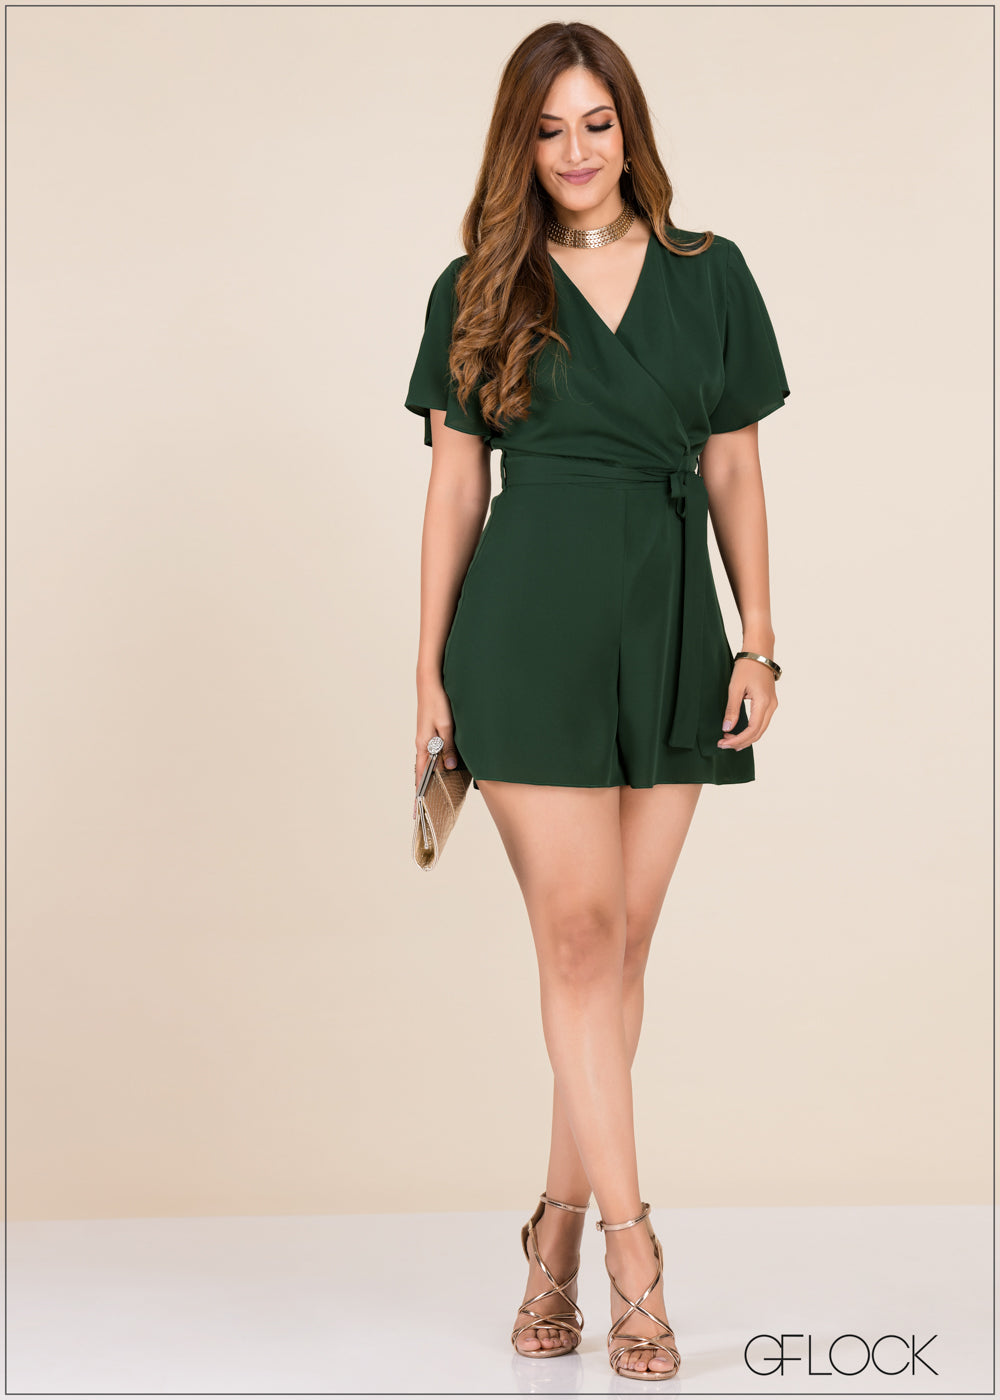 Flared Sleeve Romper - GFLOCK.LK